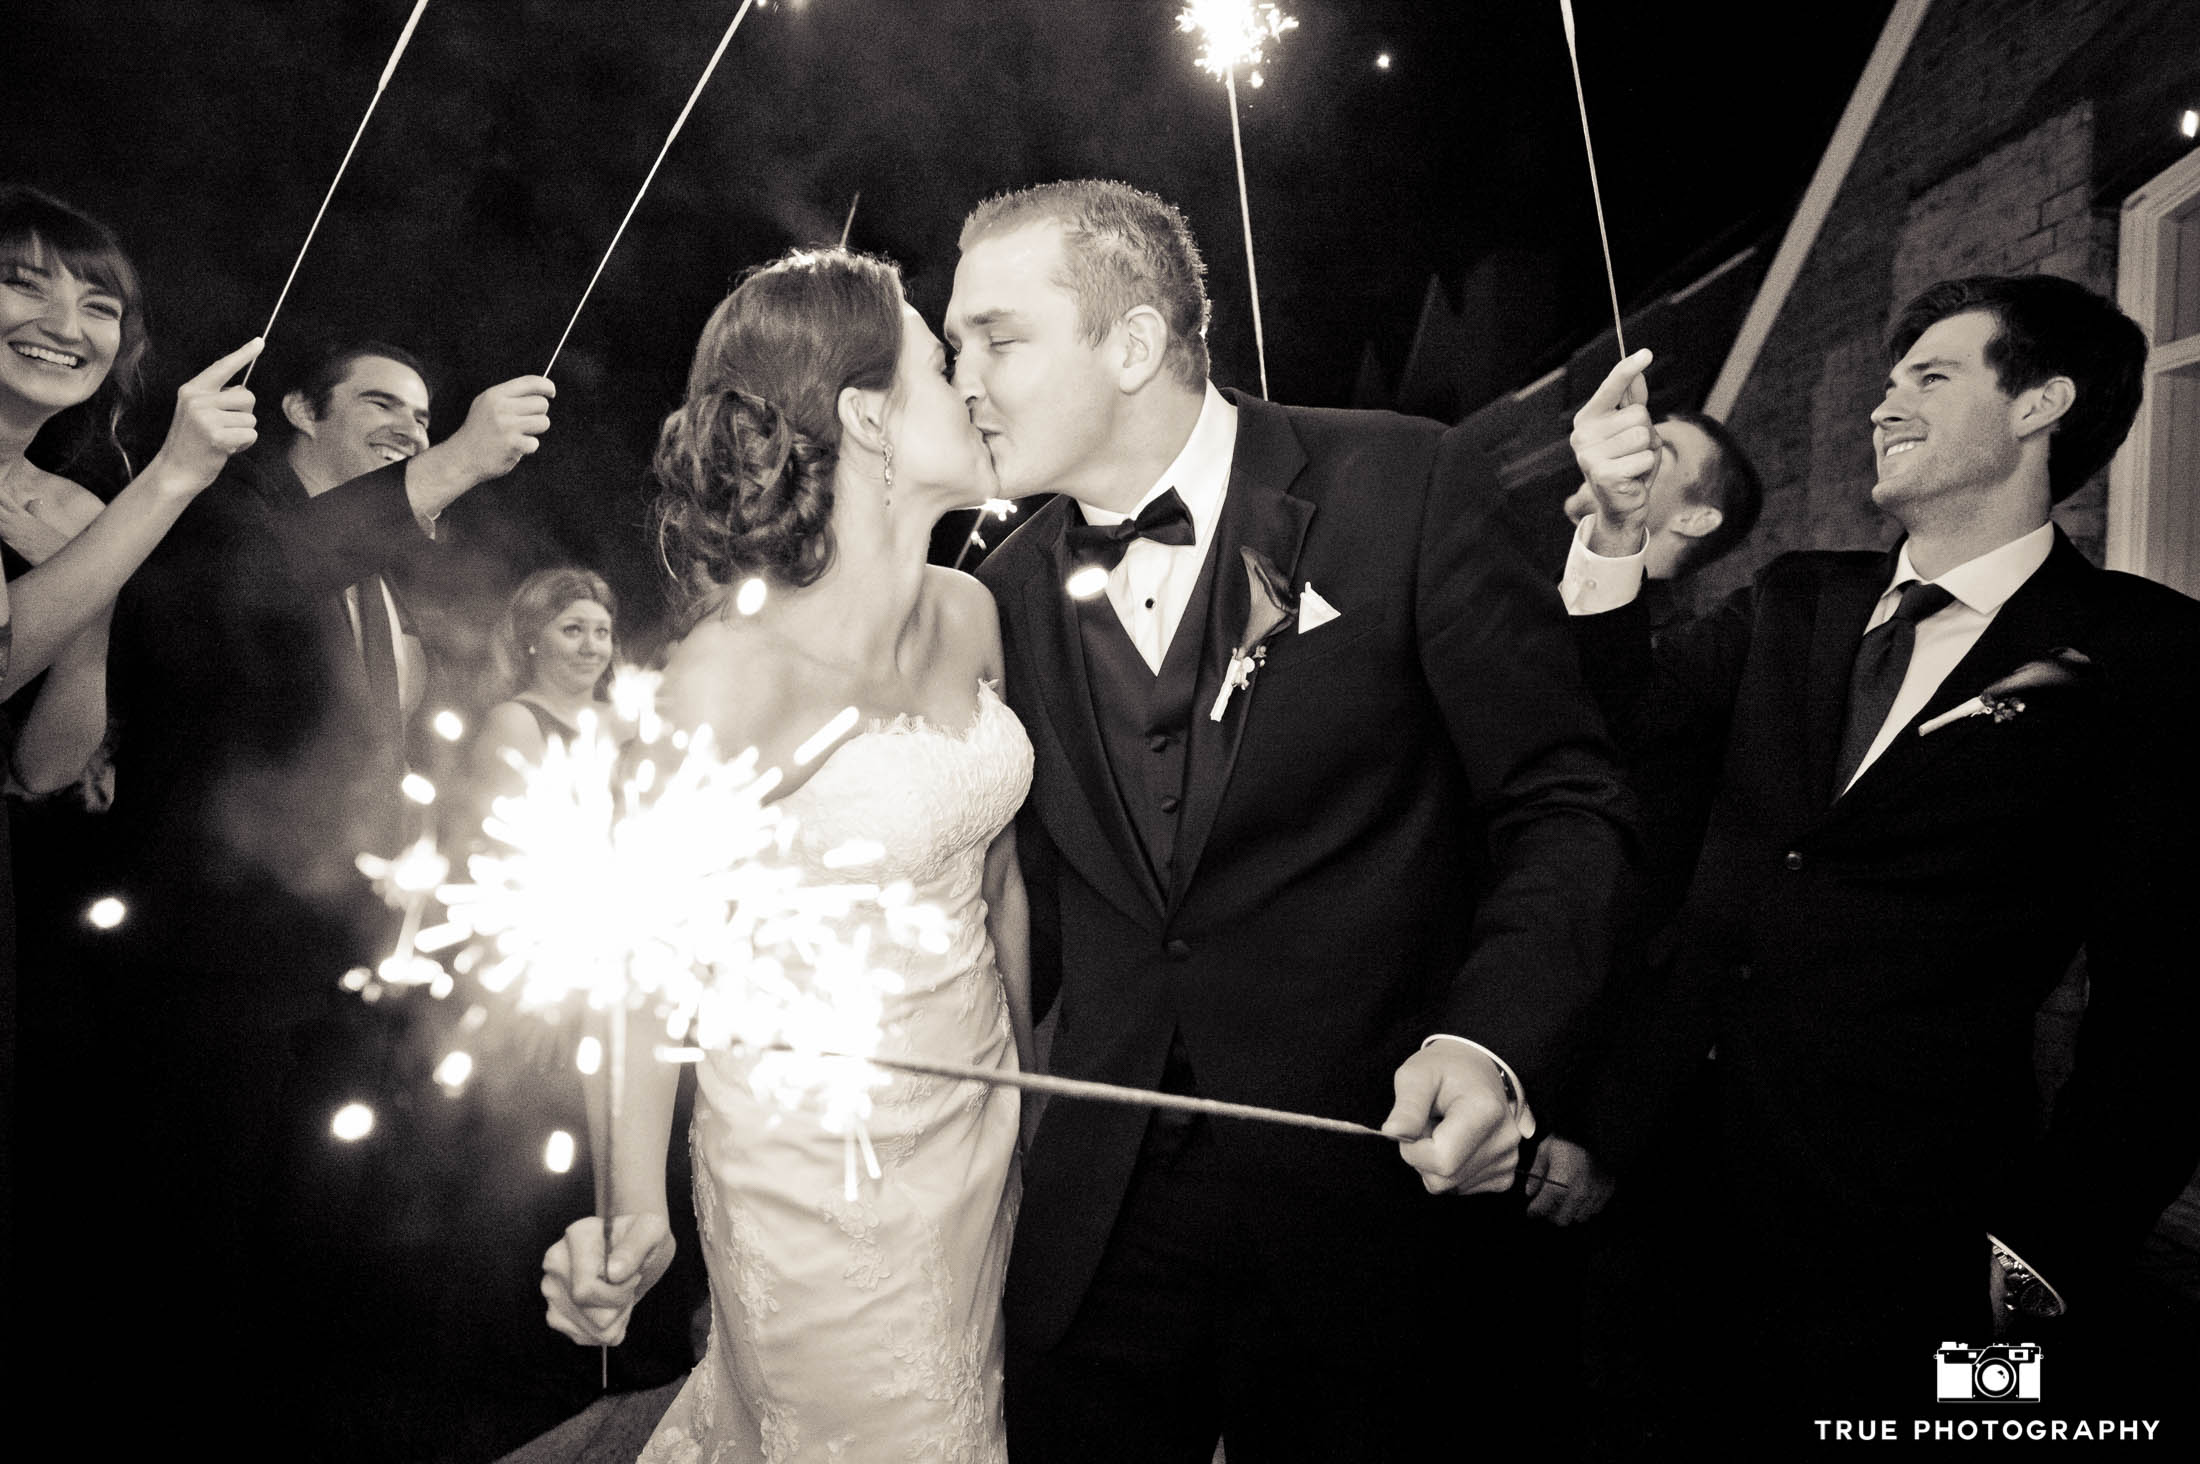 Wedding couple sparkler night shot